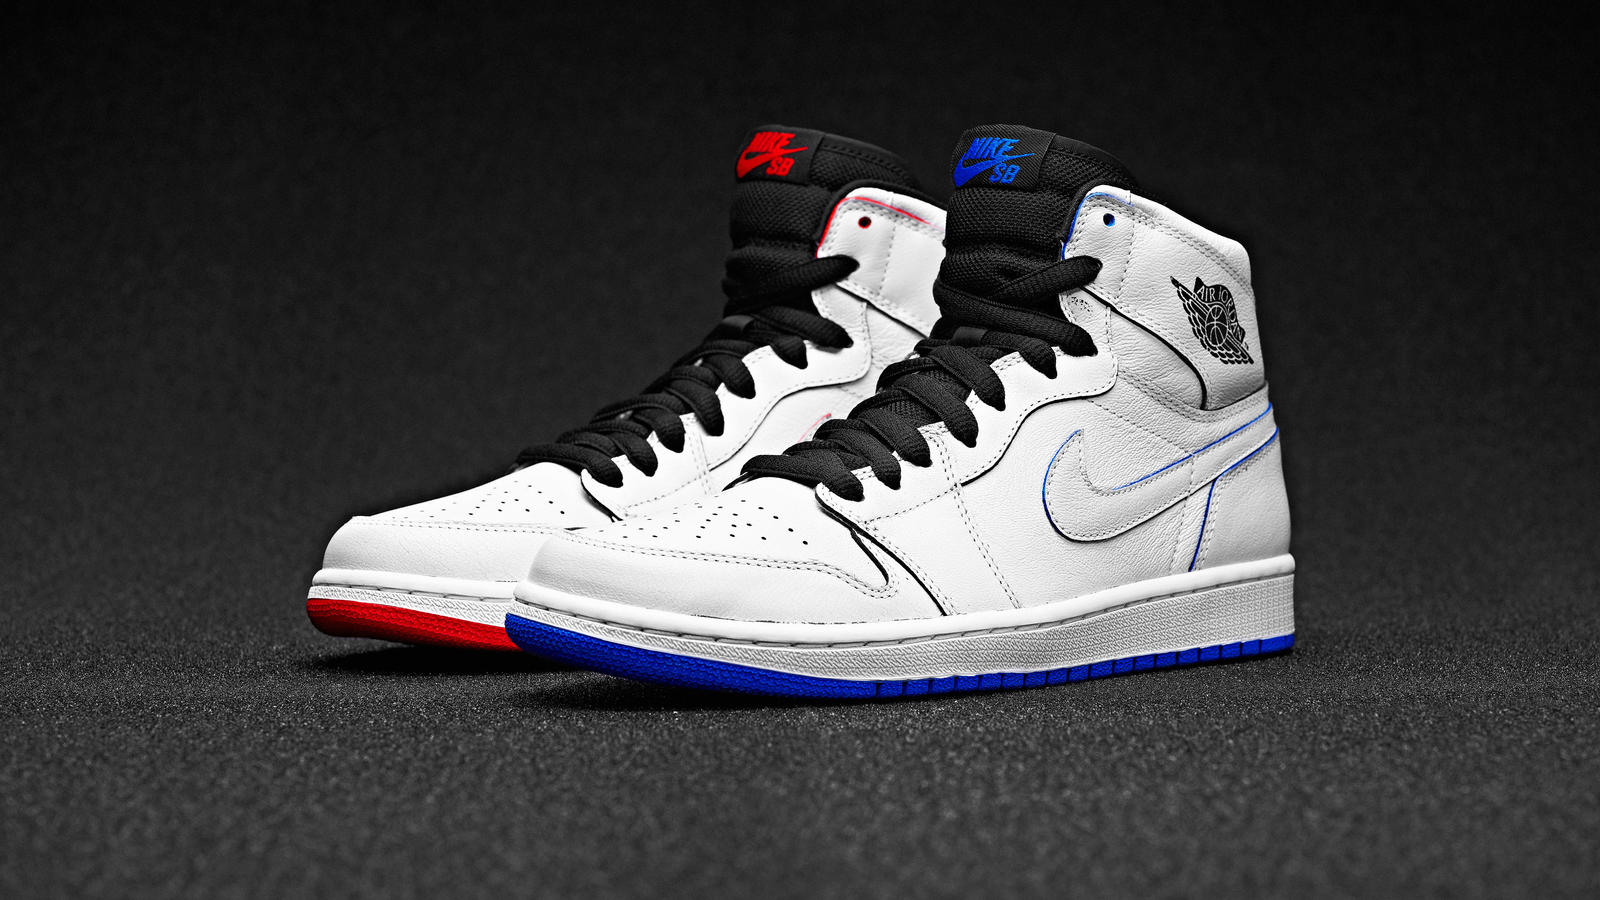 nike_sb_aj1_underneath_wht_pair_cln_original